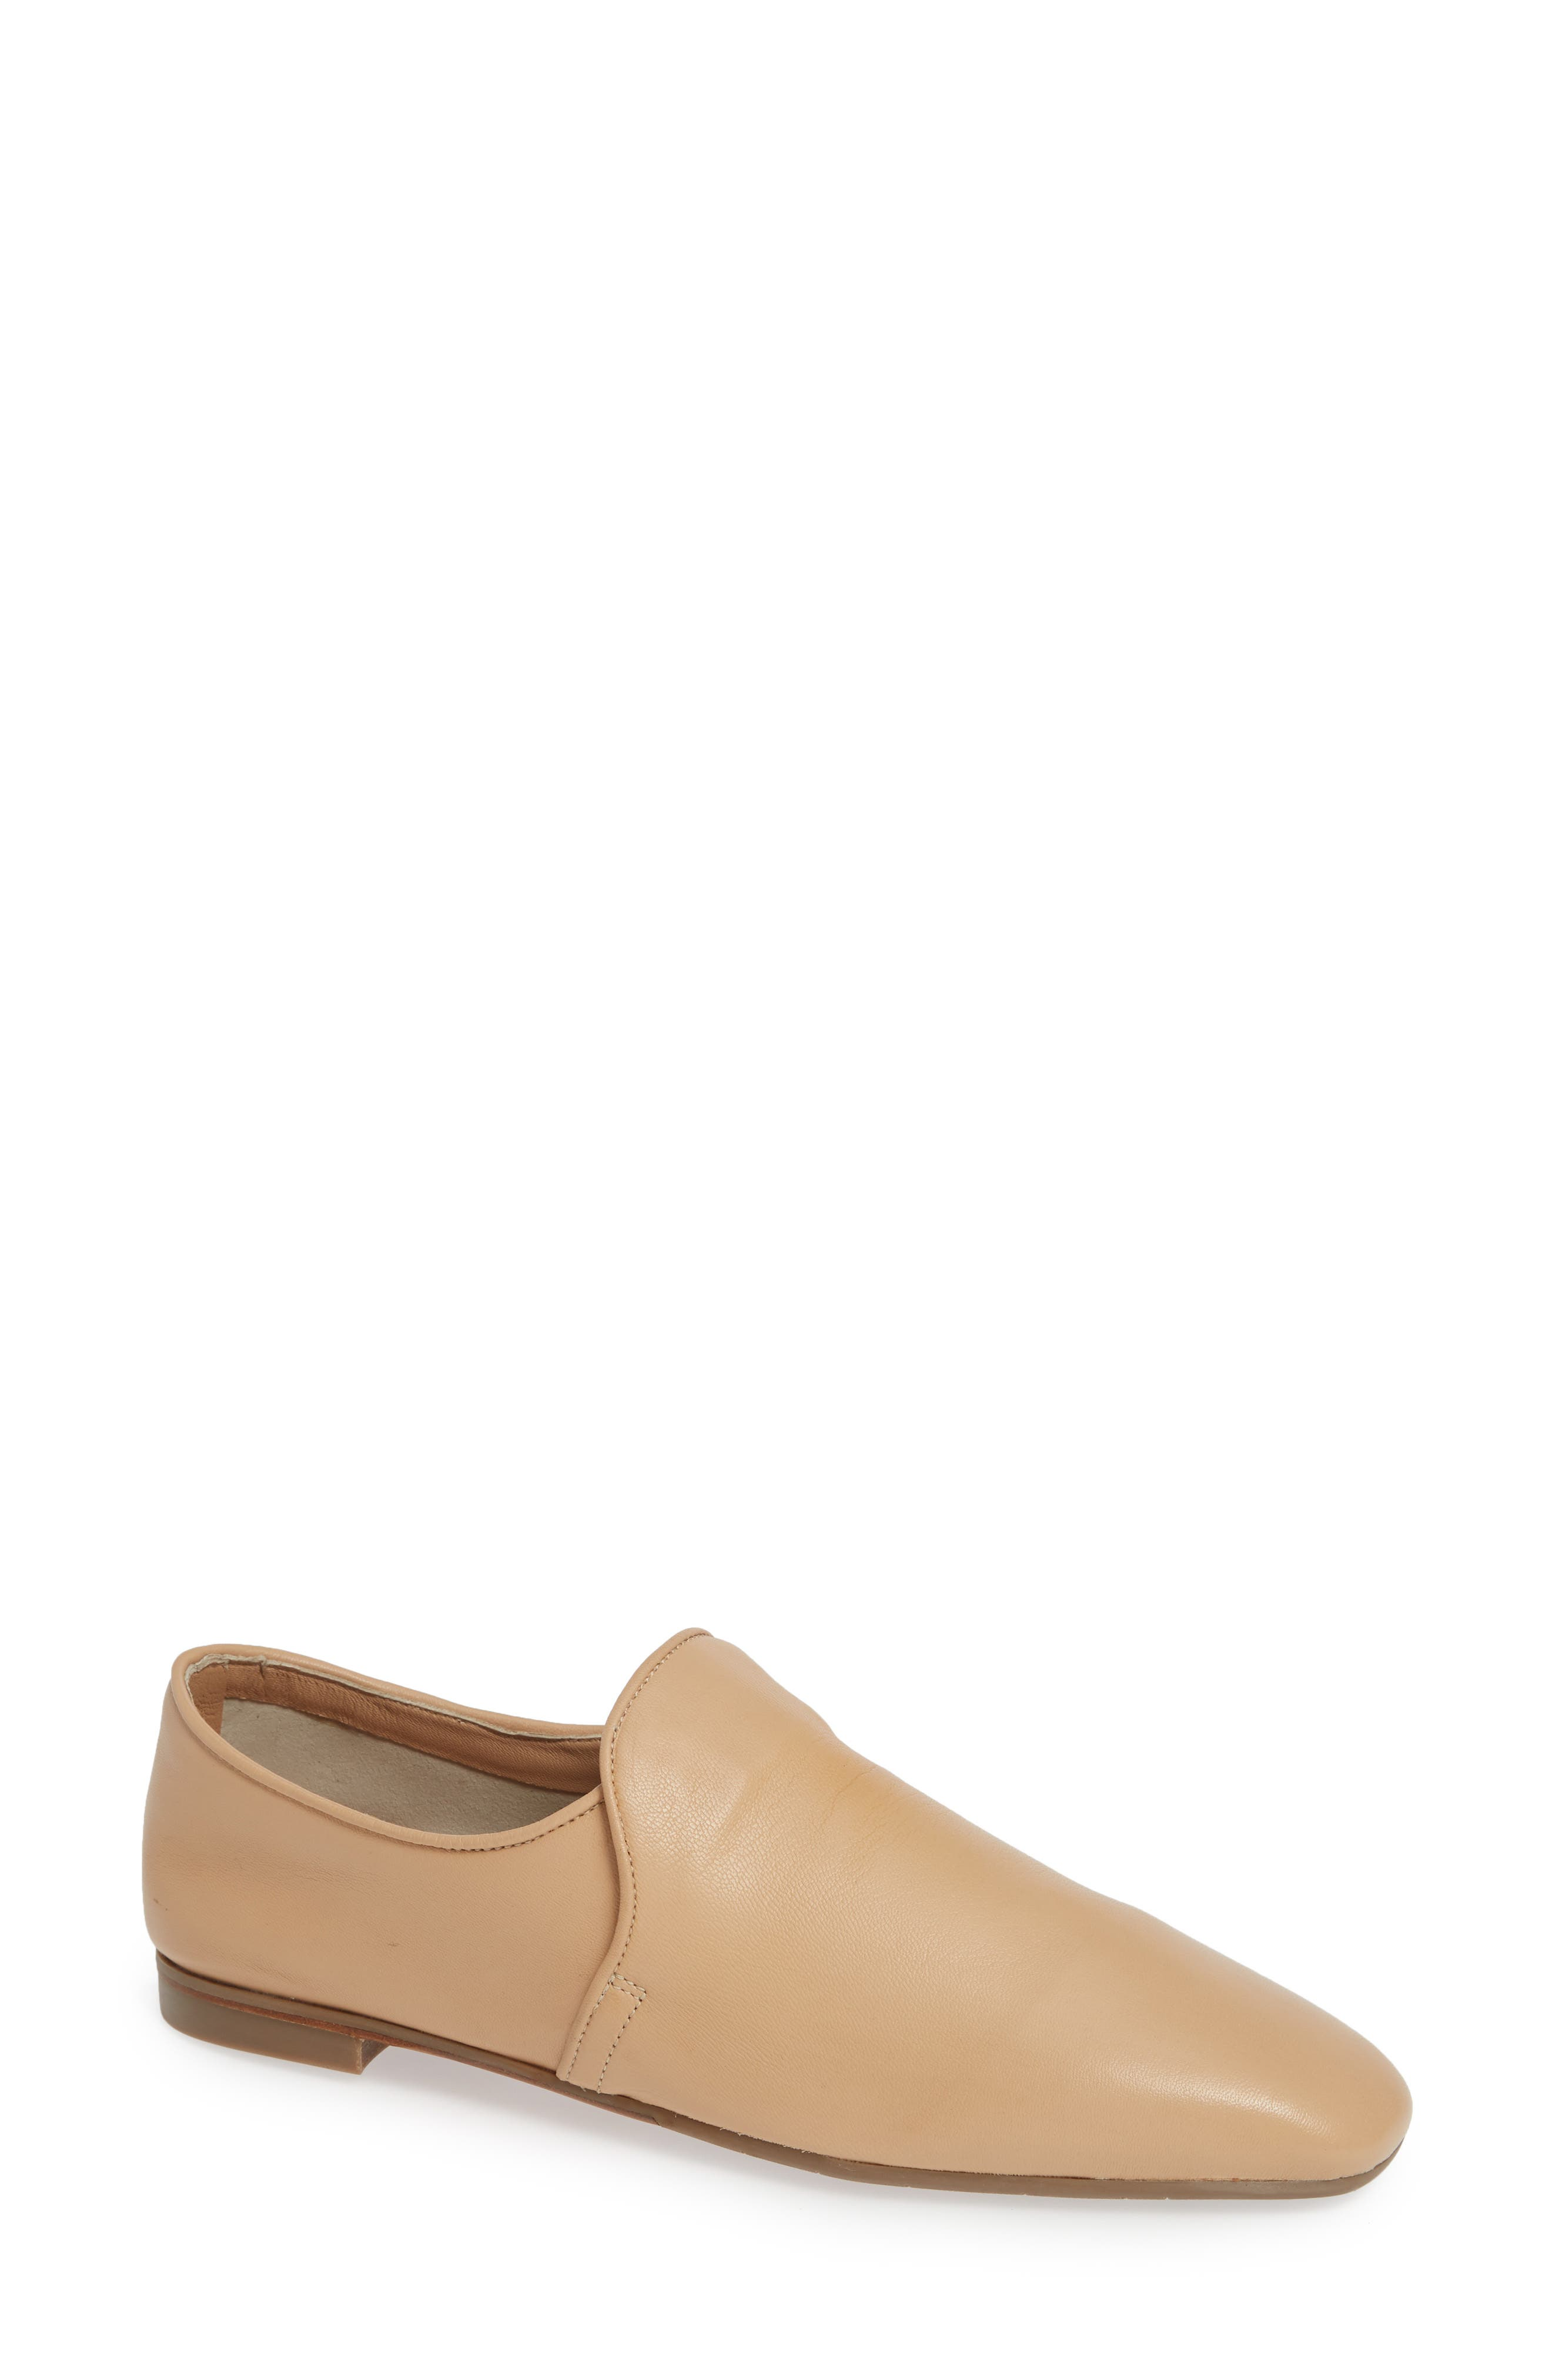 AQUATALIA, Revy Weatherporoof Loafer, Main thumbnail 1, color, NUDE NAPPA